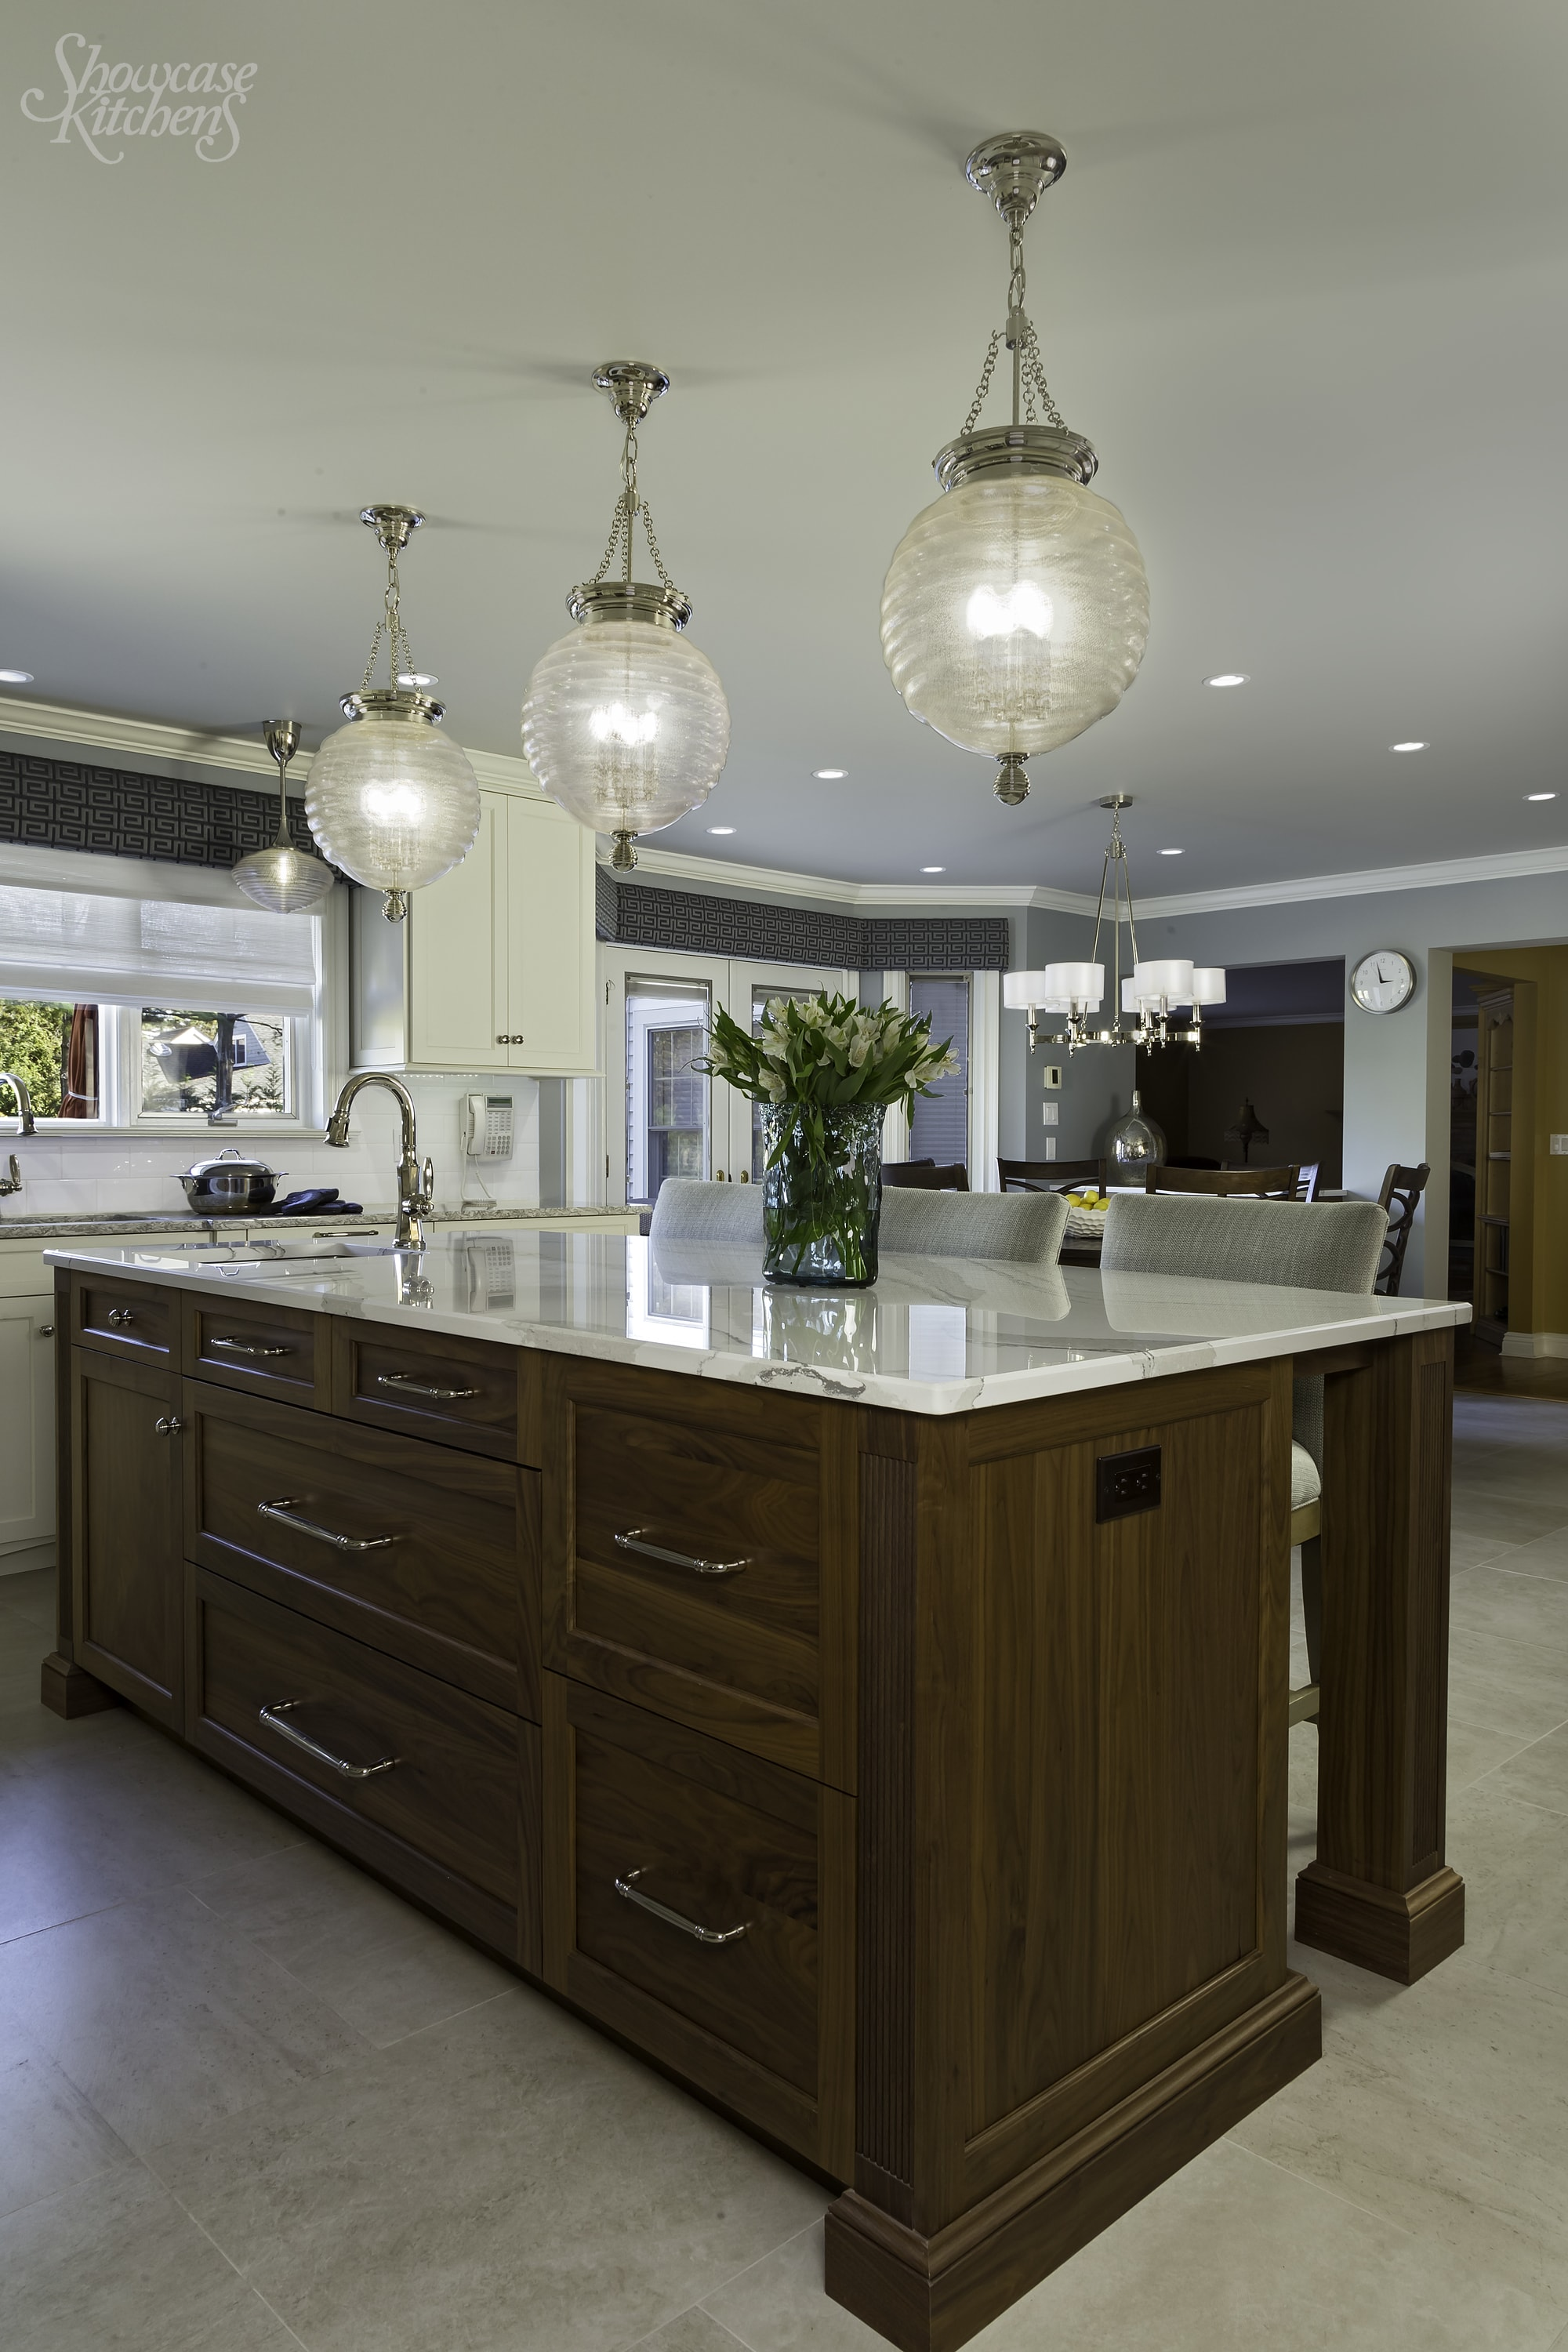 Transitional style kitchen with center island and three counter stool